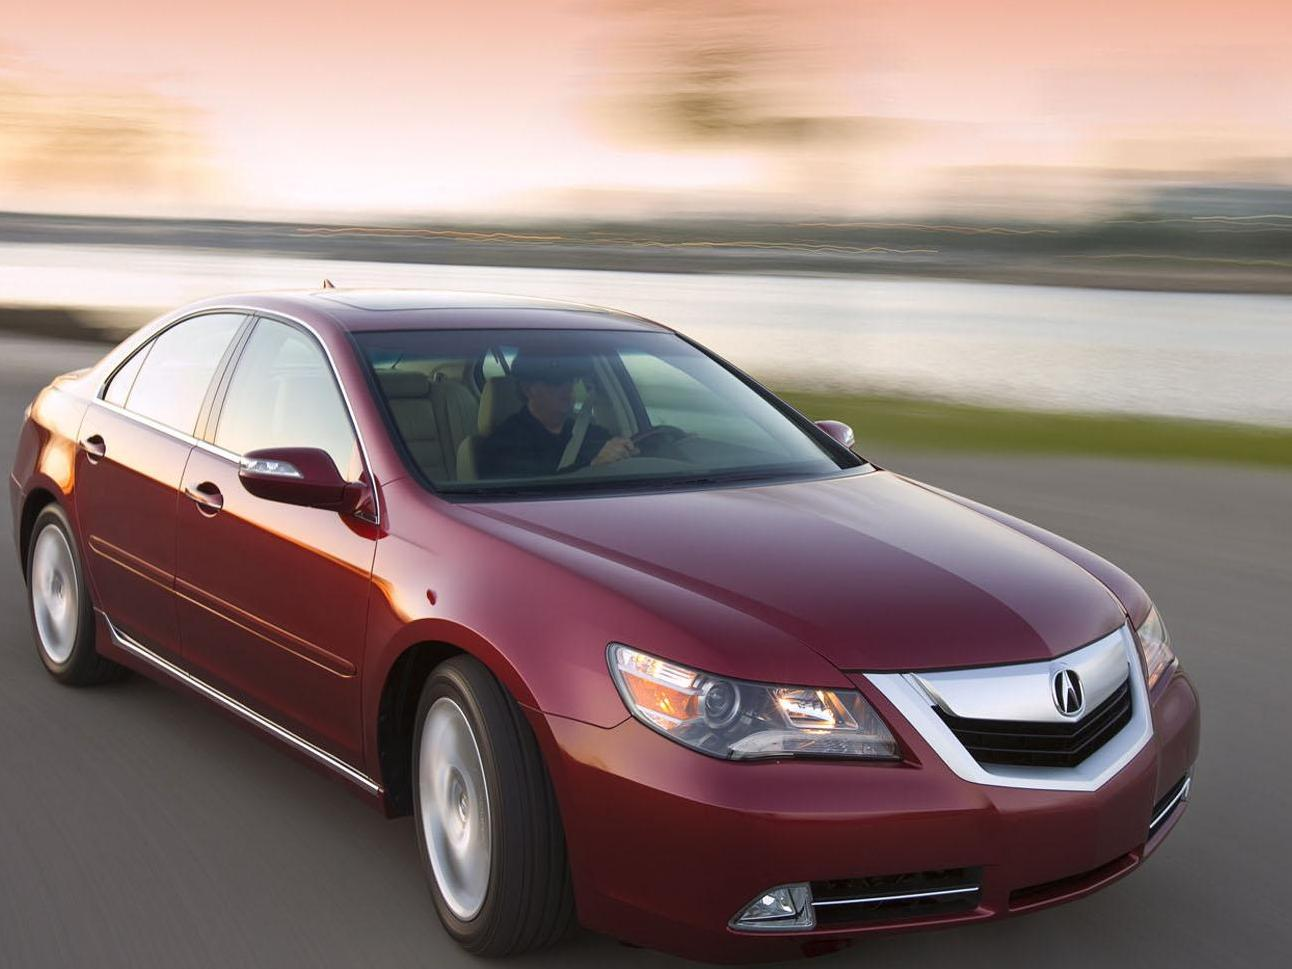 Picture of 2009 Acura RL